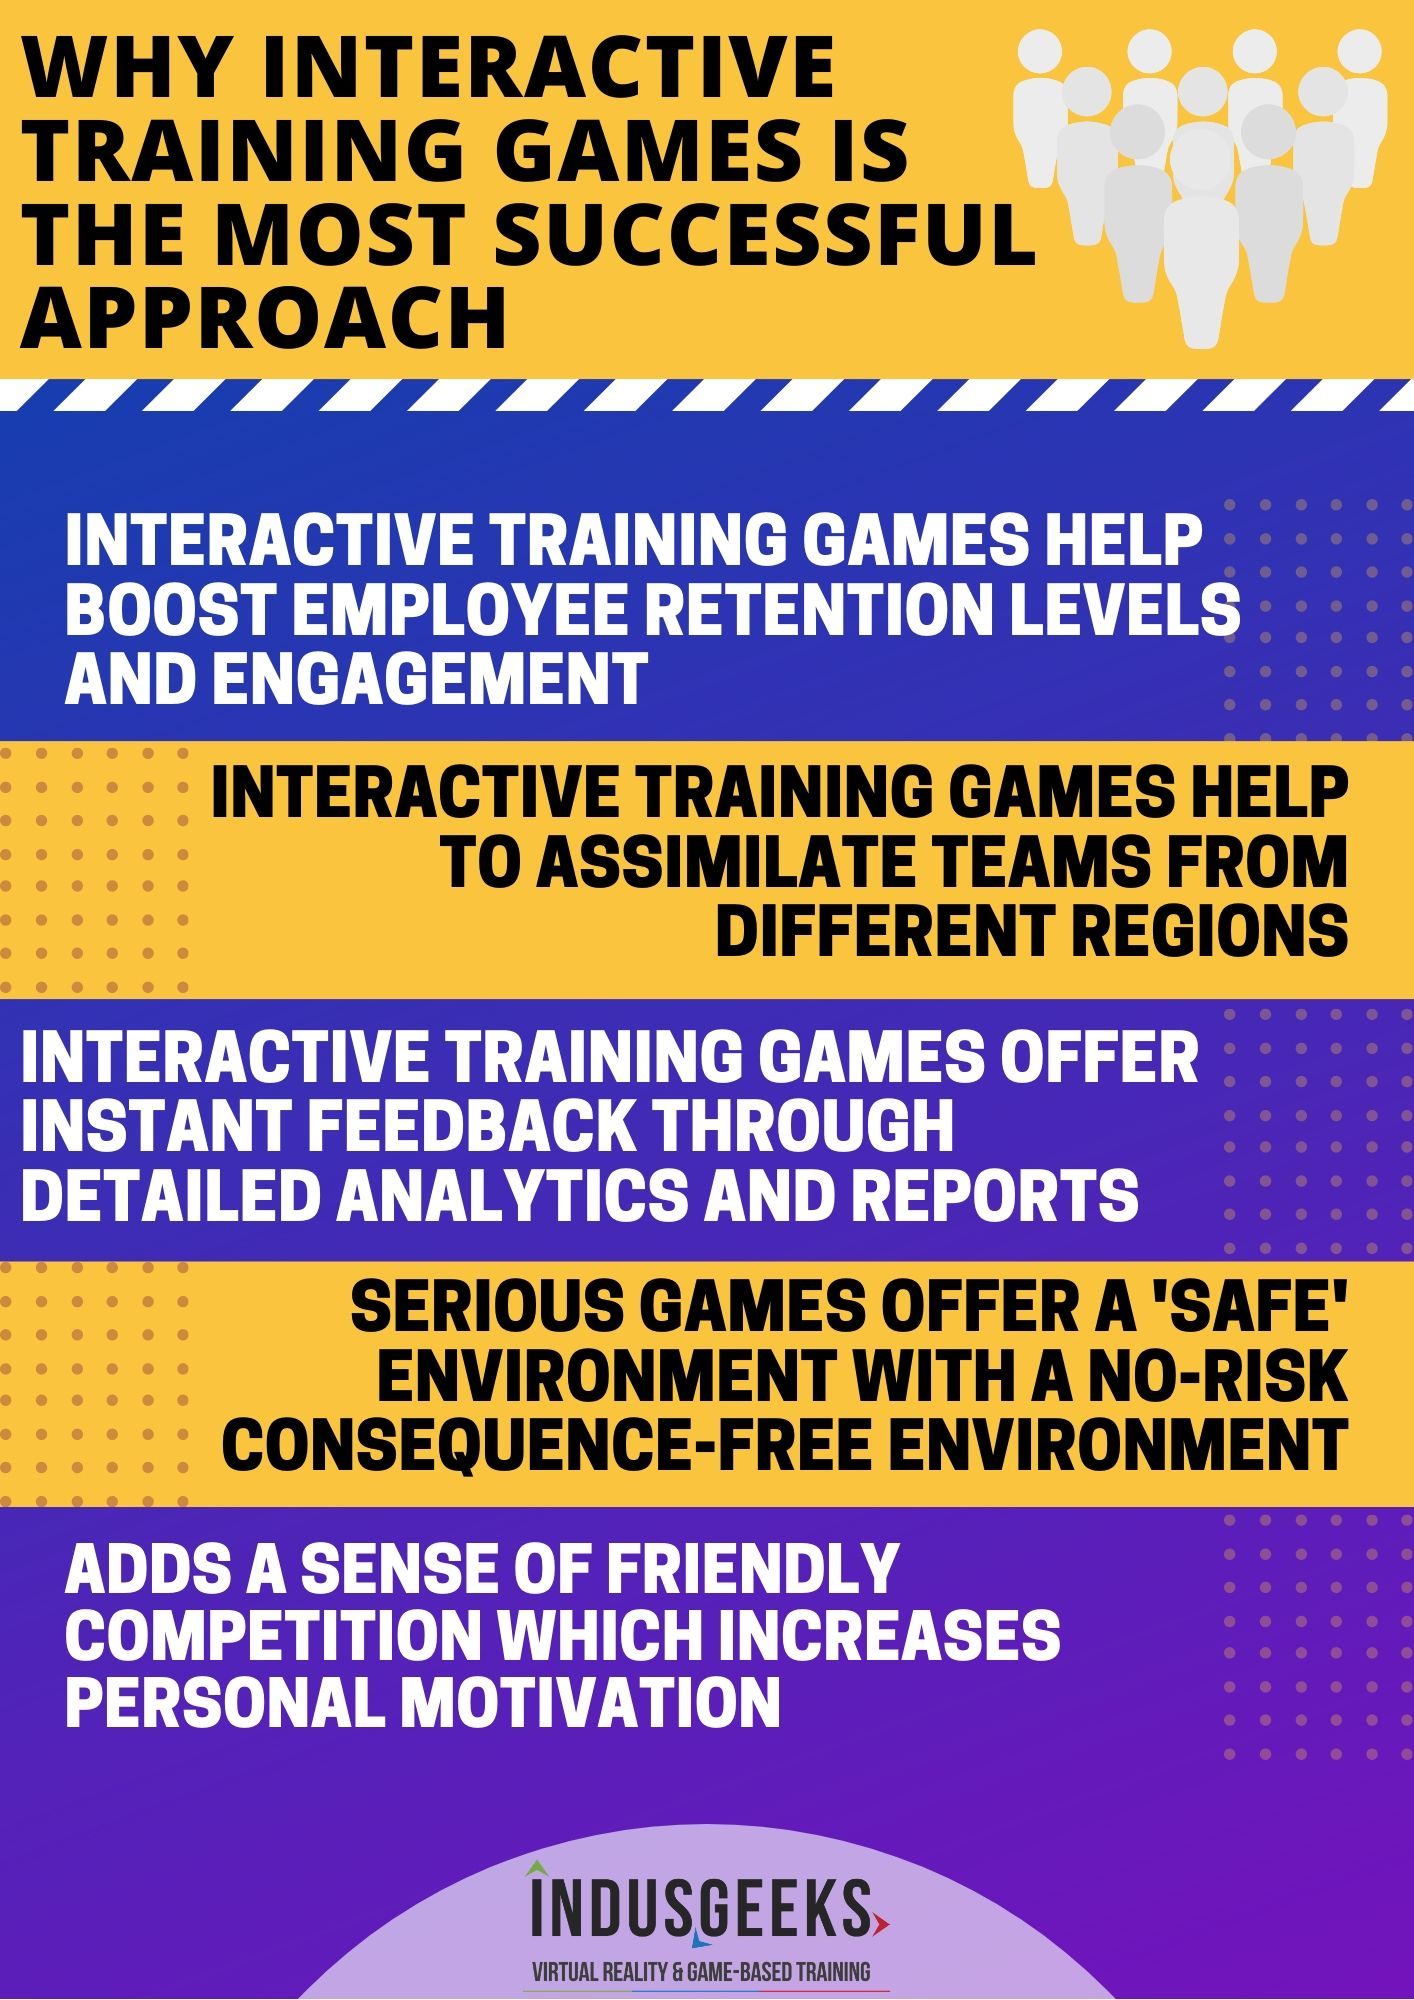 Why interactive training games work